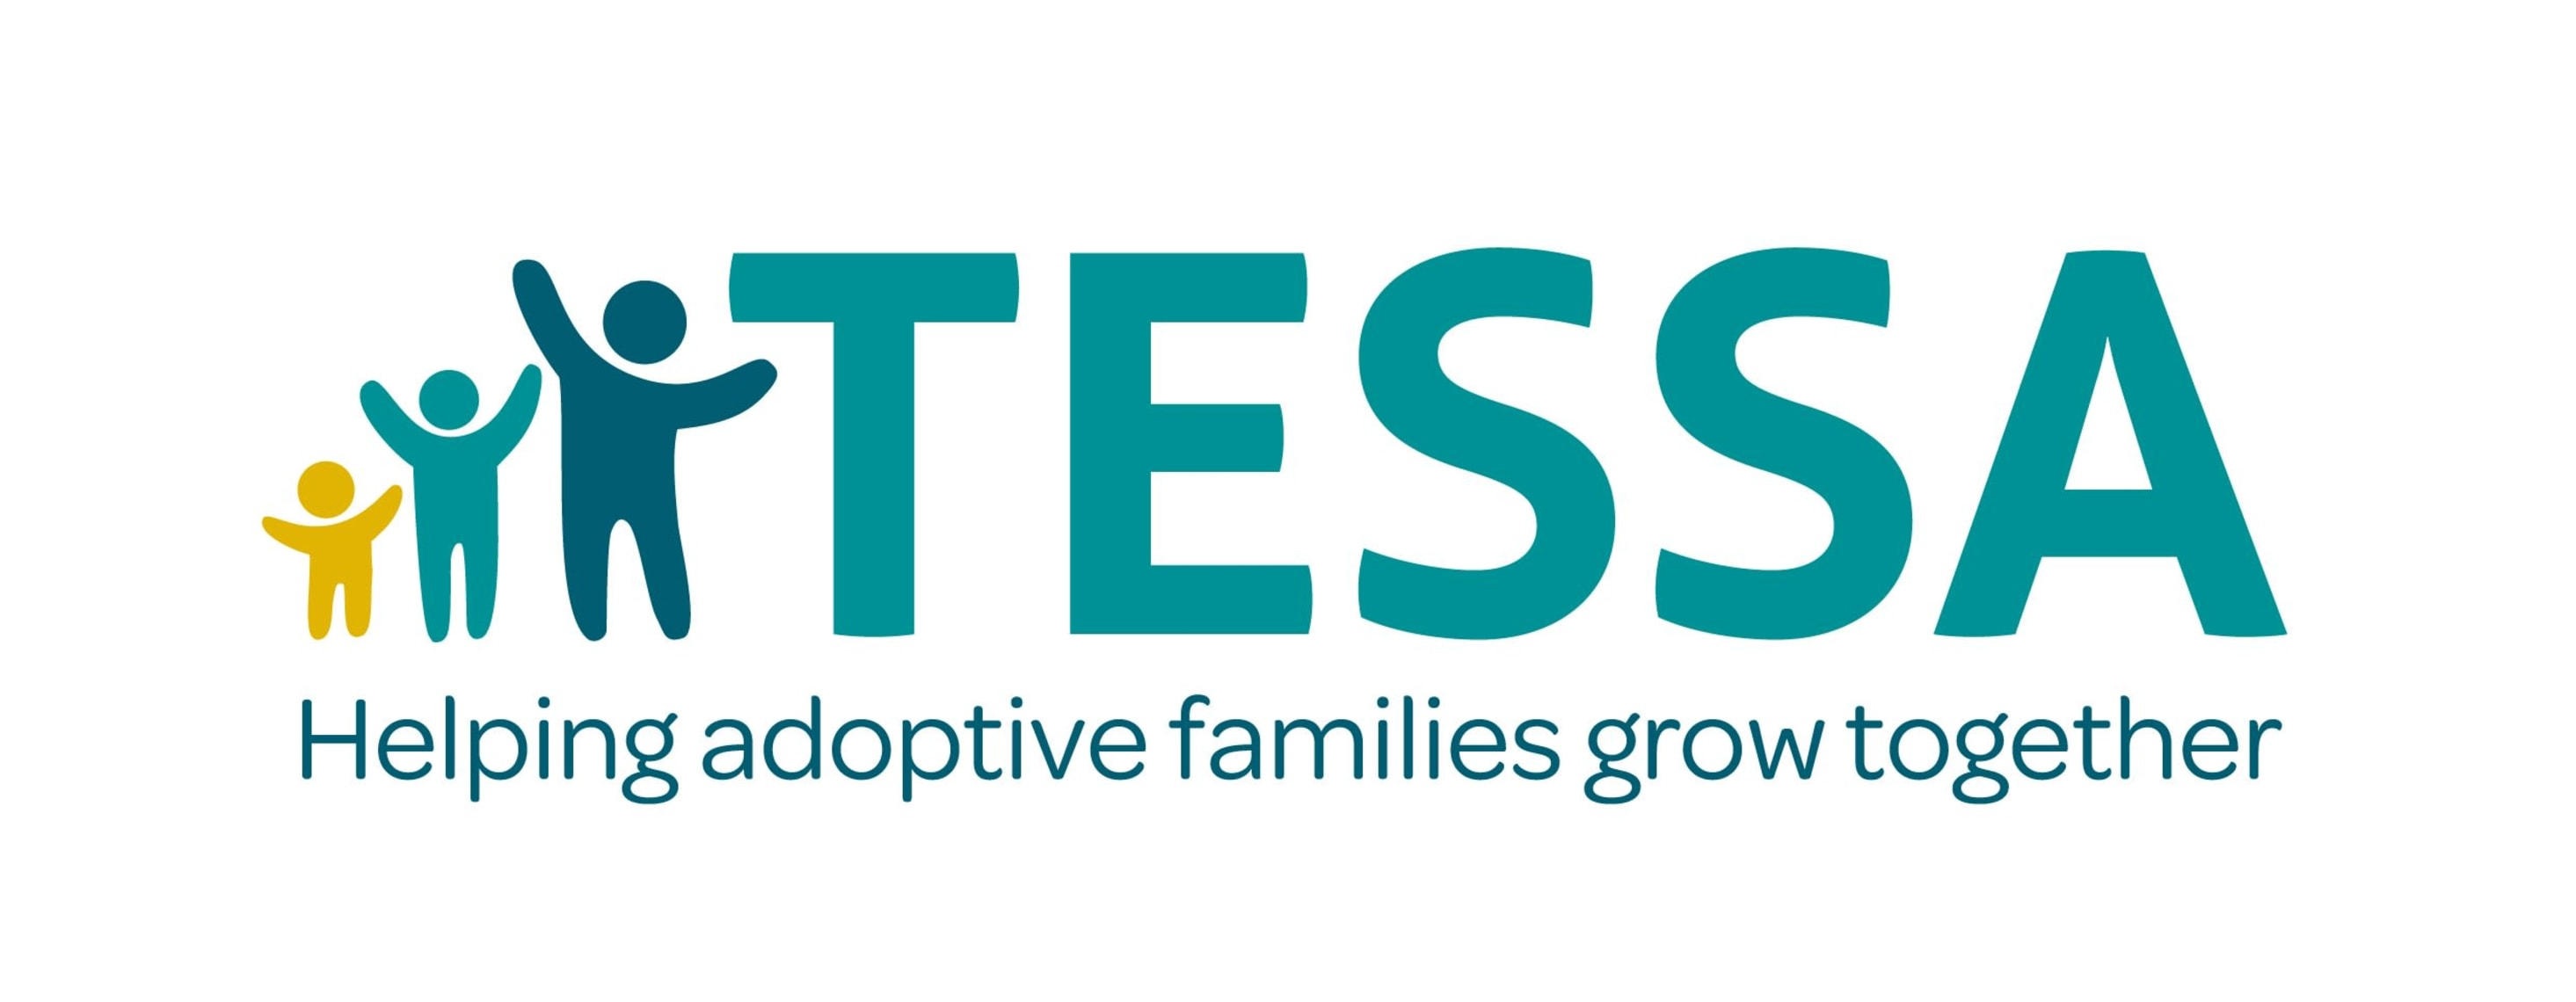 Adoptive families of Wales championed through new therapeutic service